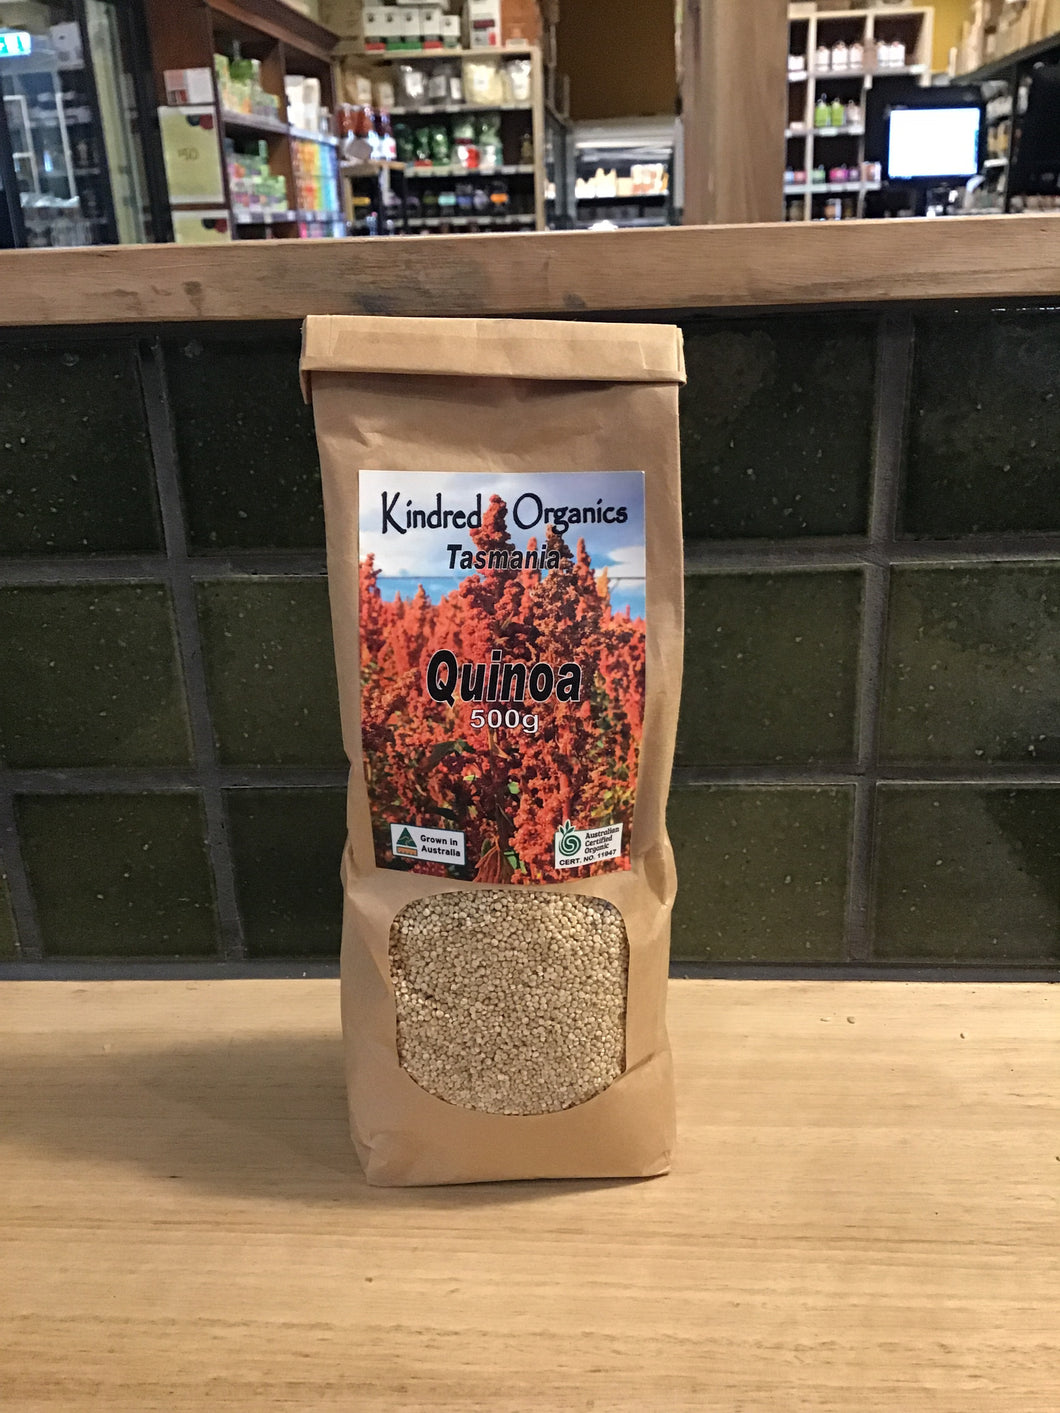 Kindred Organics Quinoa 500g